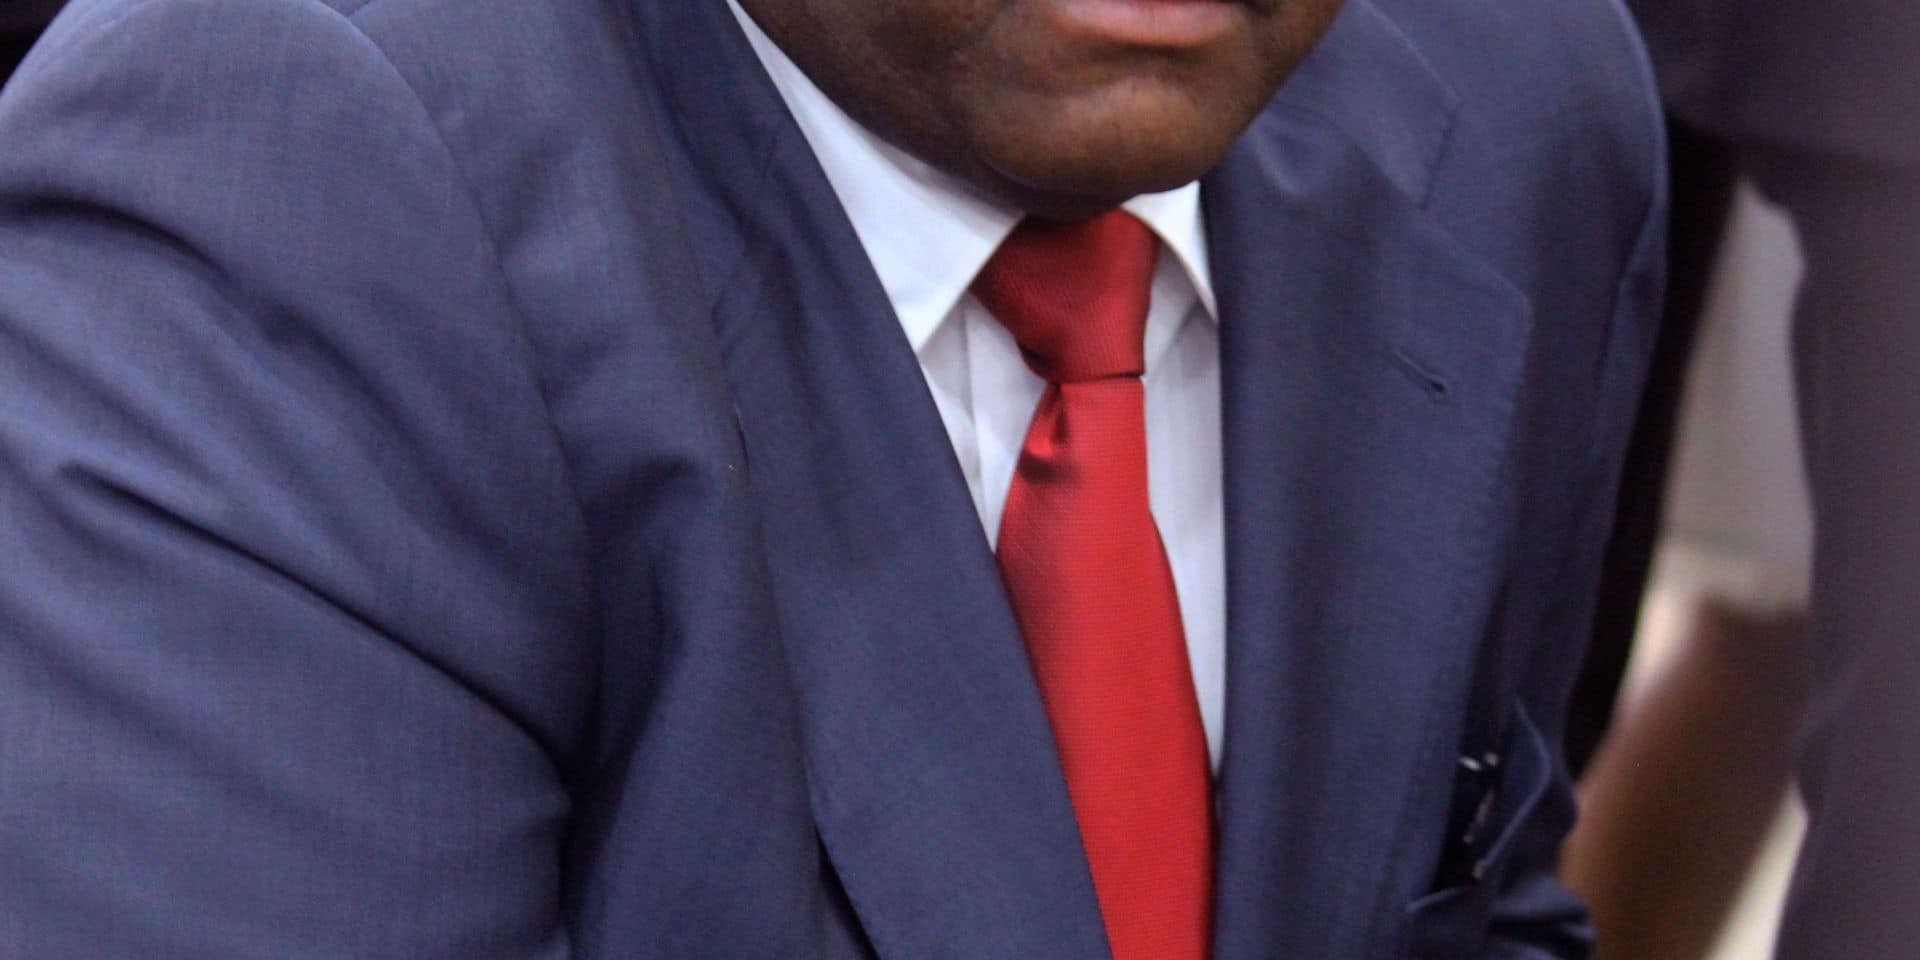 Former DRCongo warlord Jean-Pierre Bemba looks on as he arrives at Kinshasa airport on August 1, 2018, after more than 11 years abroad -- a decade of it behind bars. Bemba returned home on August 1, 2018 to huge crowds and police firing teargas, reflecting the country's high-voltage political mood. Bemba, 55, throwing down the gauntlet to his rival President Joseph Kabila, has vowed to contest twice-delayed elections due to take place on December 23. / AFP PHOTO / Papy MULONGO